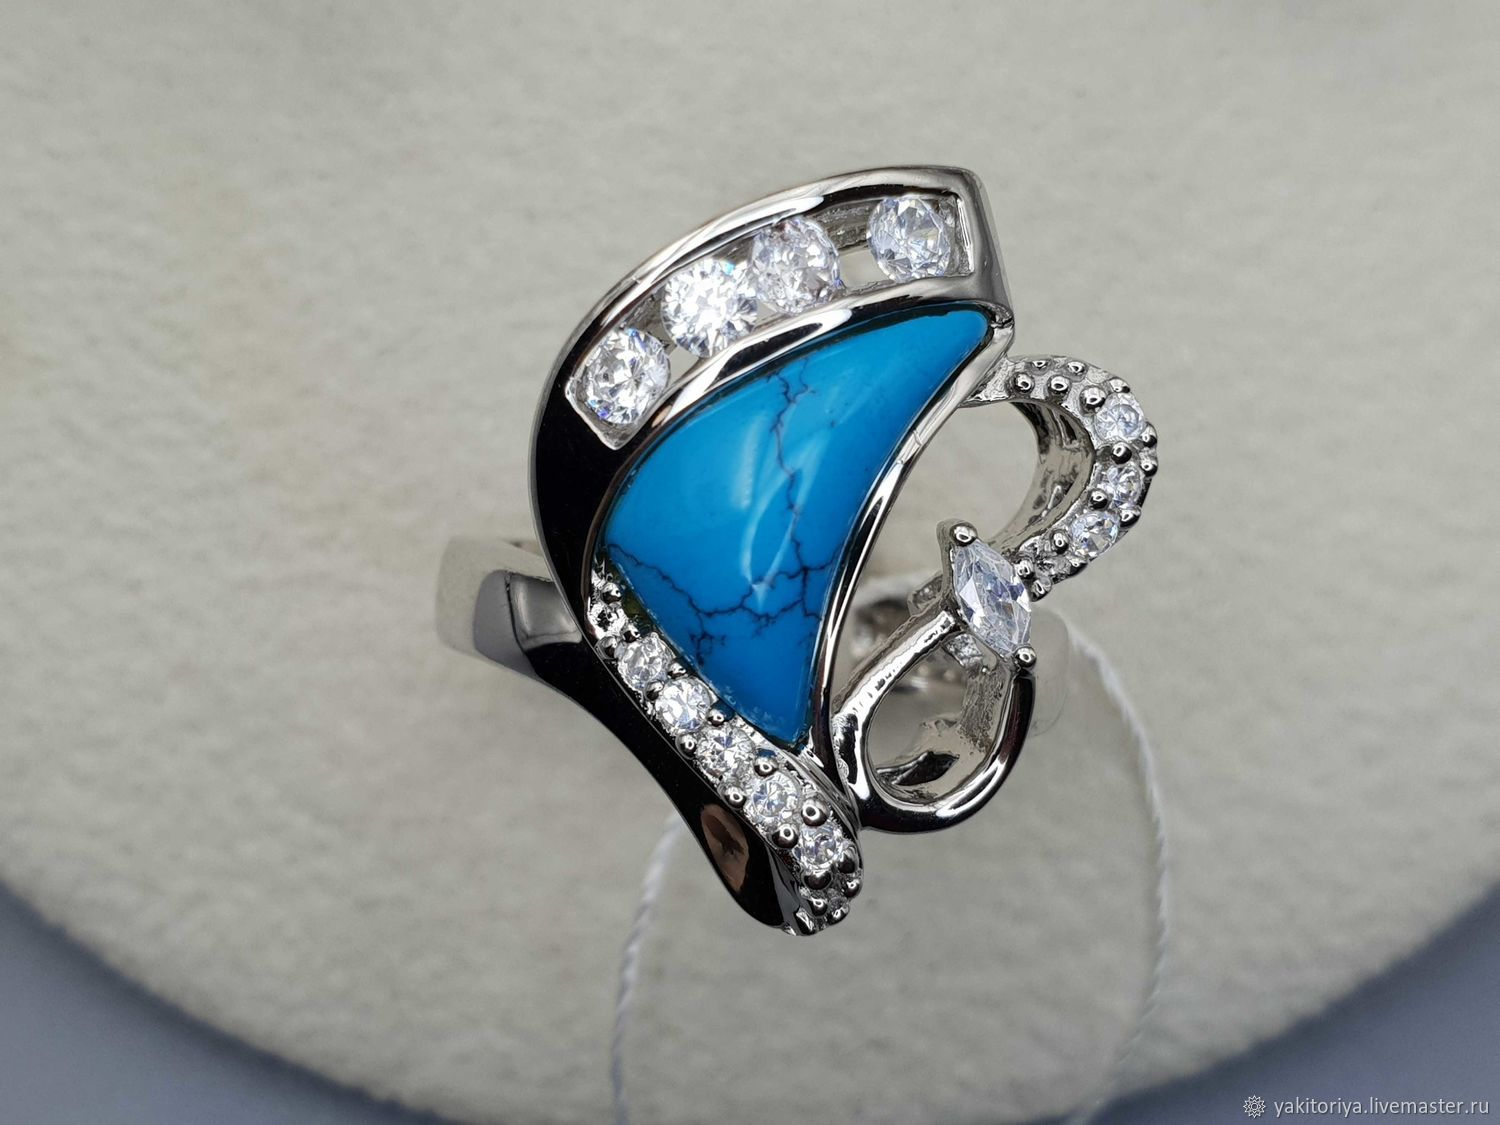 Silver ring with turquoise 13h8 mm and cubic zirconia, Rings, Moscow,  Фото №1